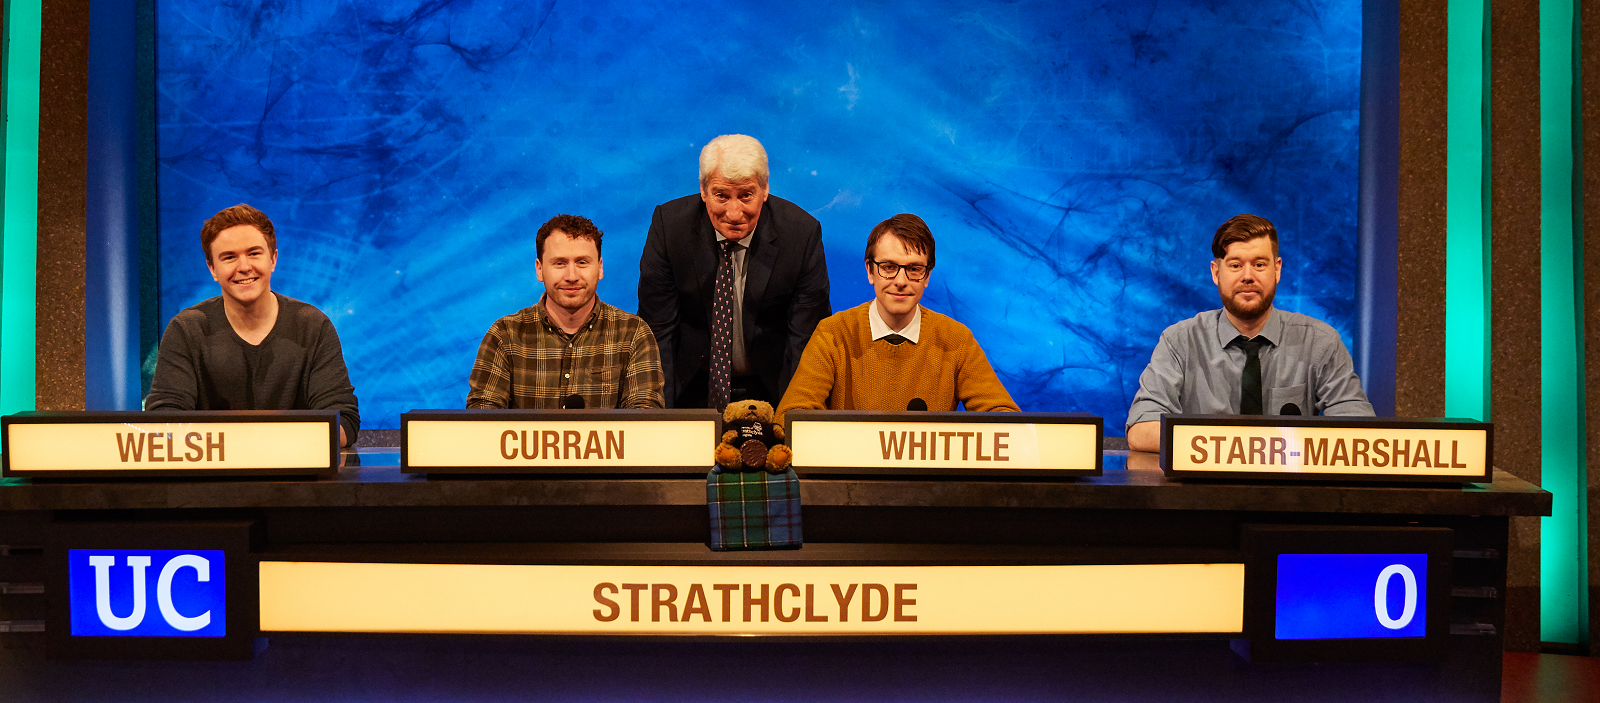 Strathclyde's University Challenge team with host Jeremy Paxman at their first round match